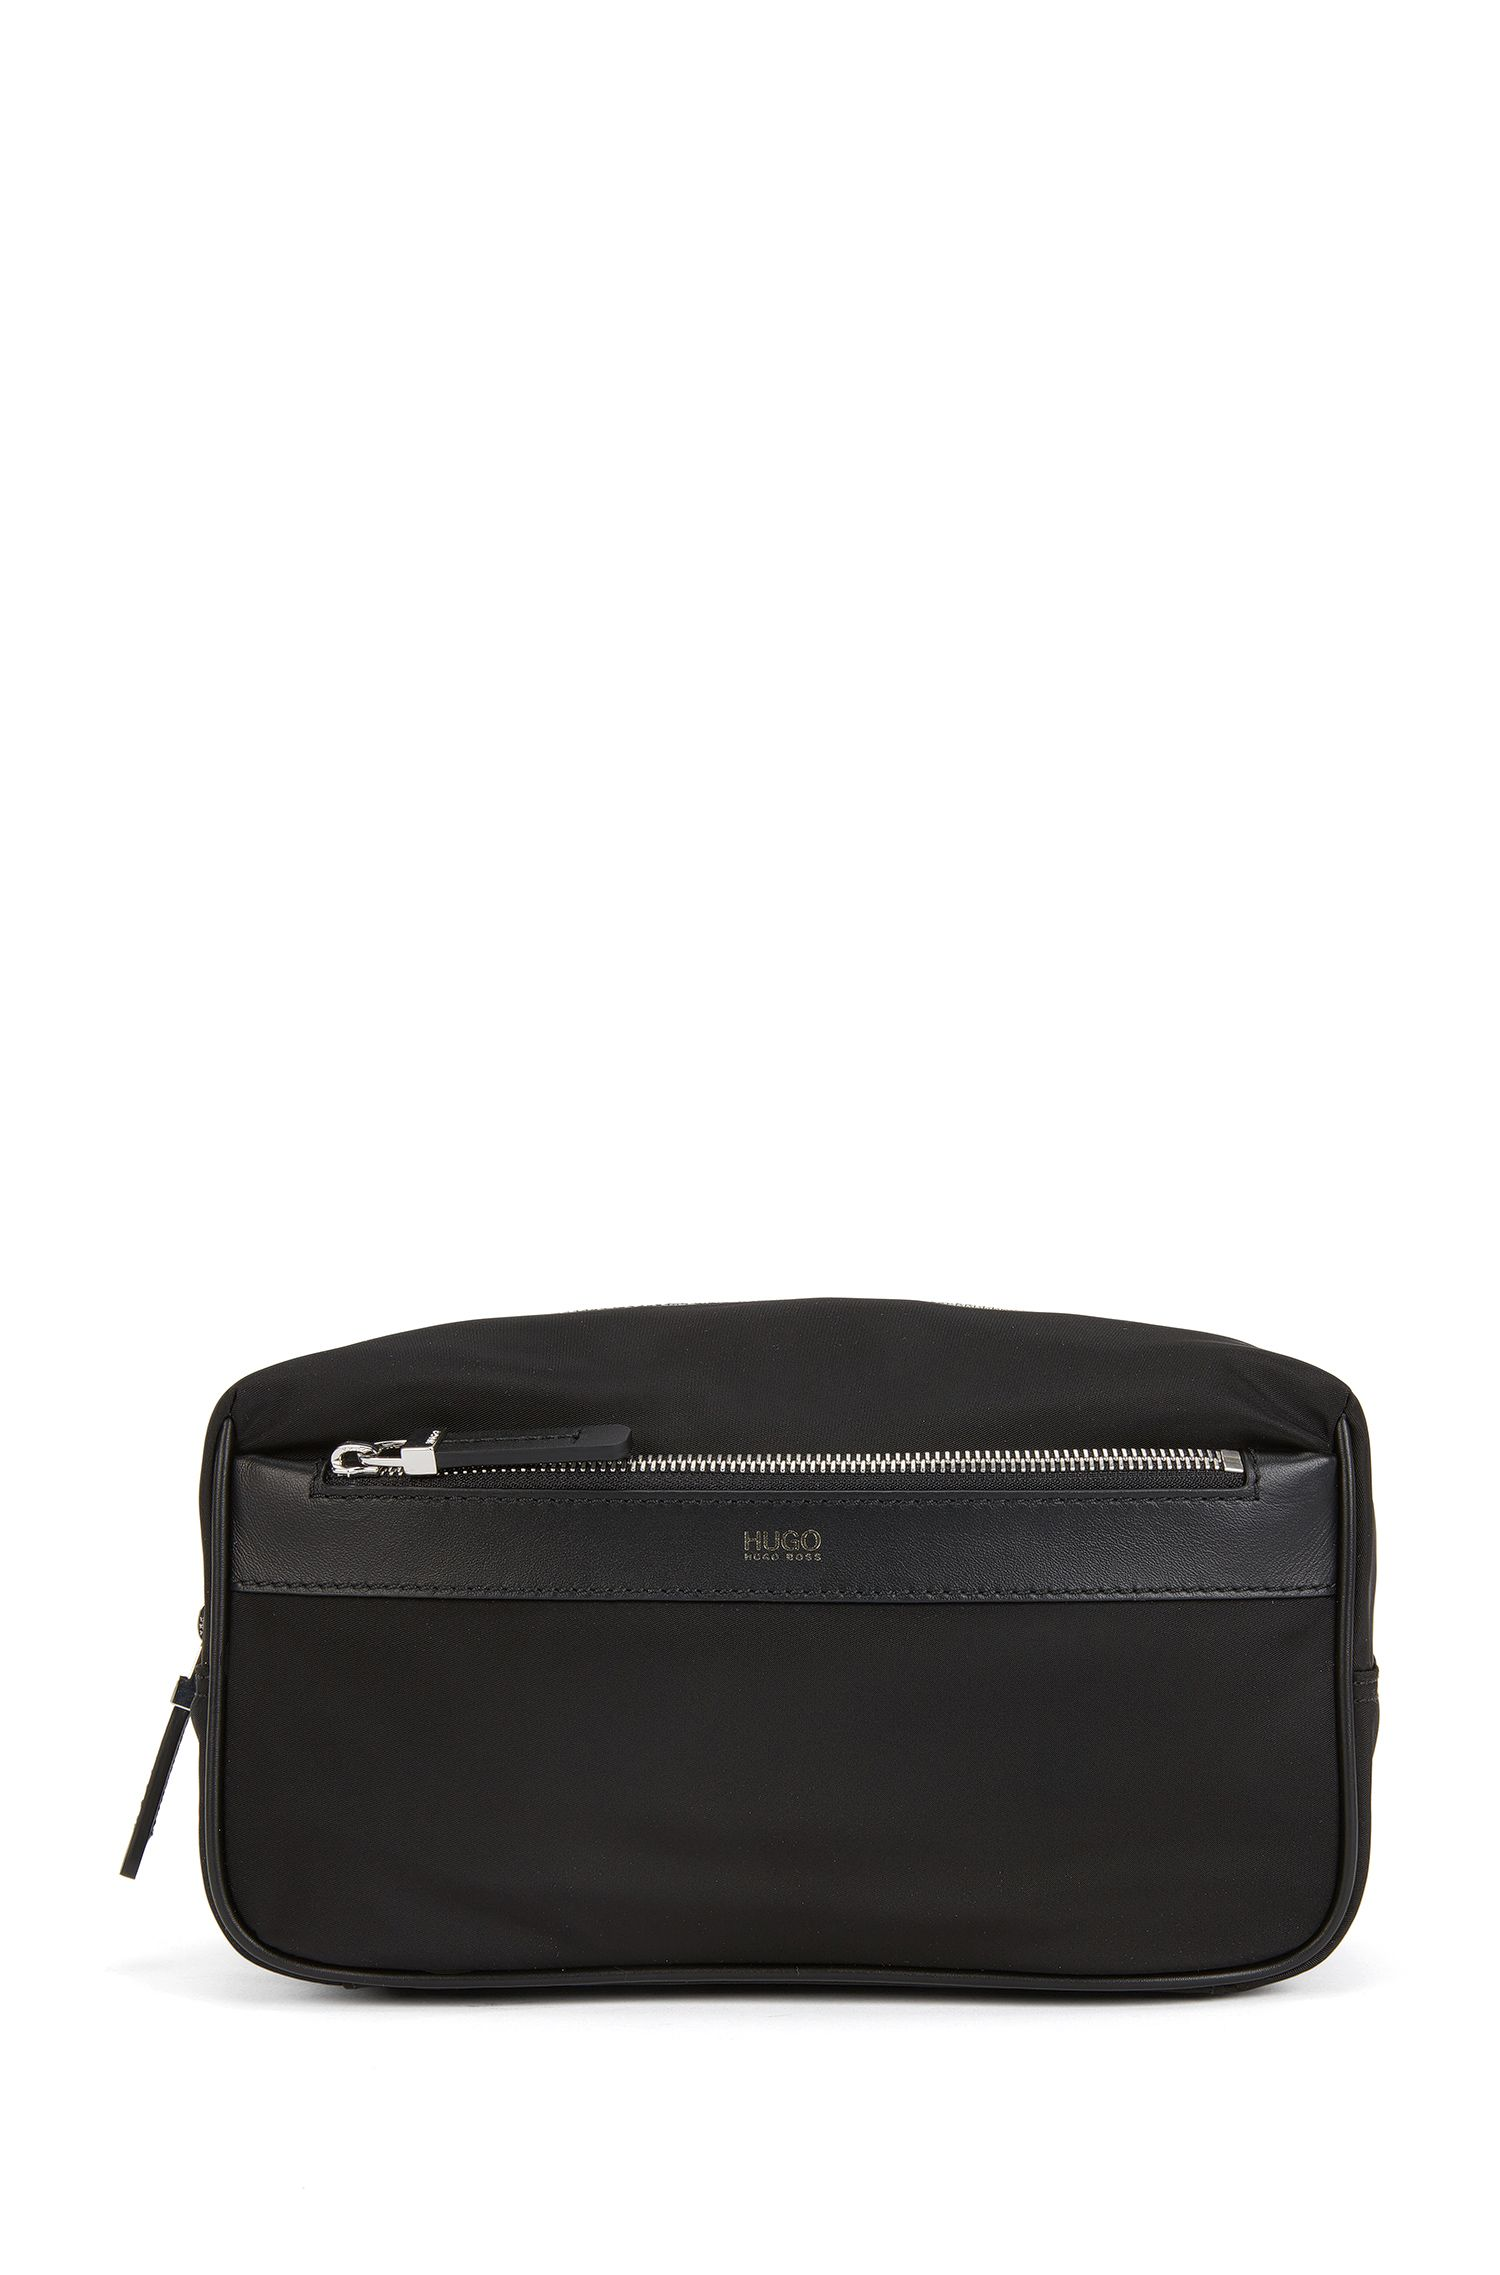 Washbag in nylon with leather trim